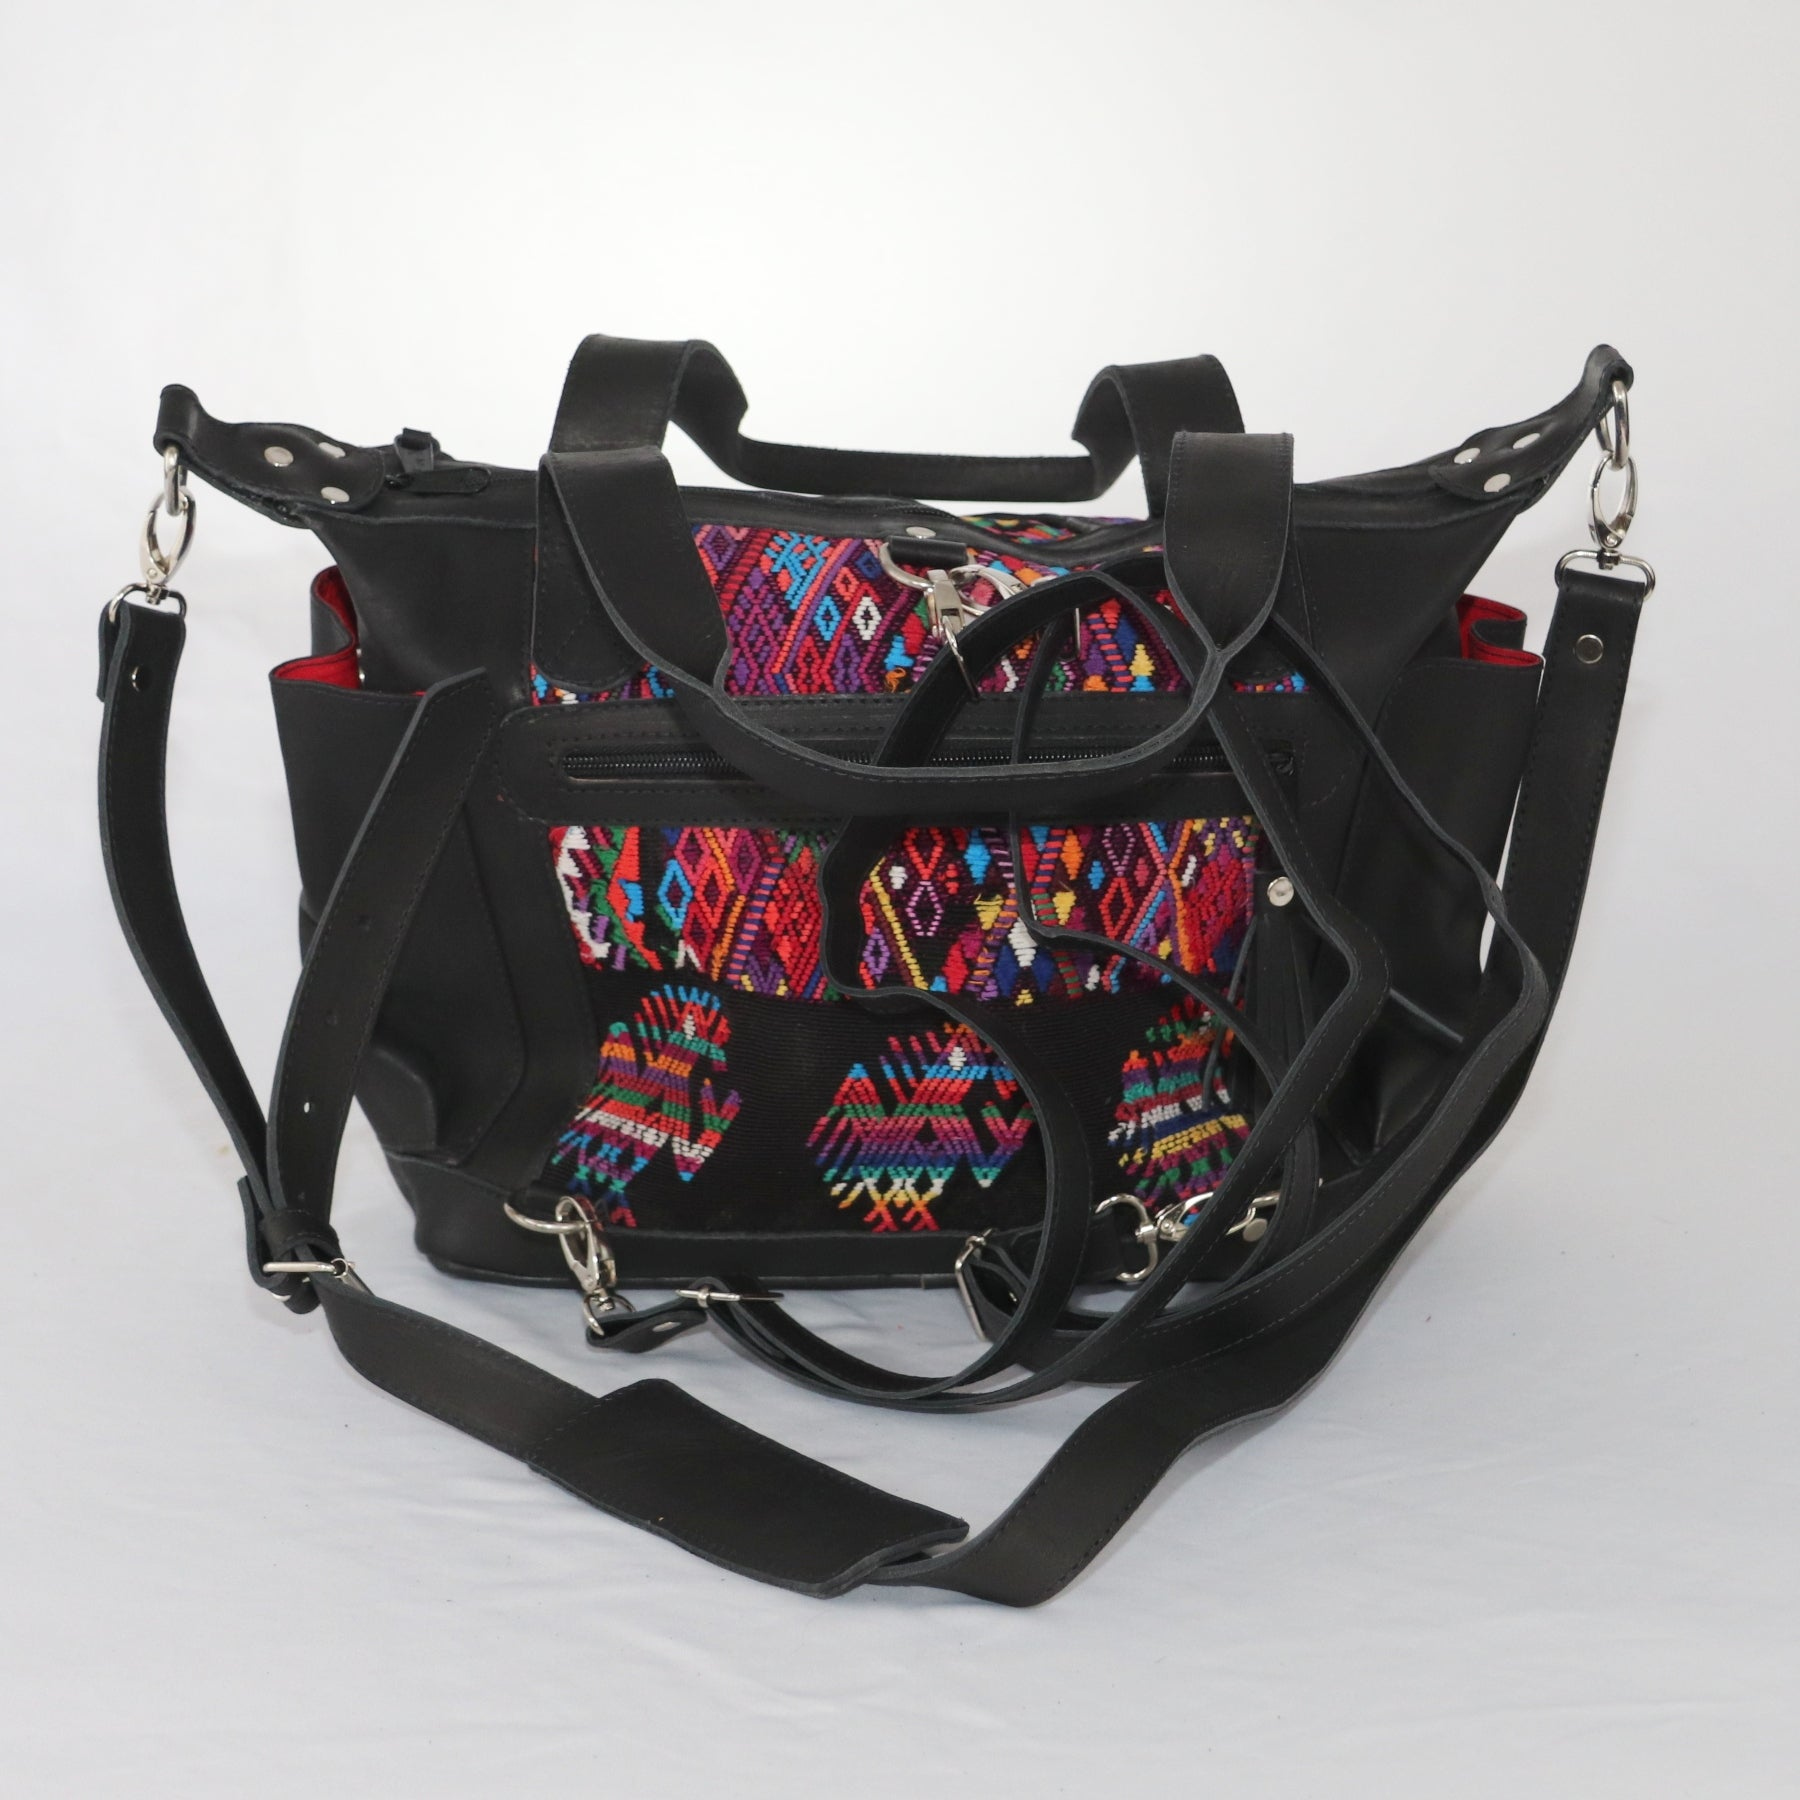 Bella: Small Mayan Black Leather Day Bag with detachable backpack straps